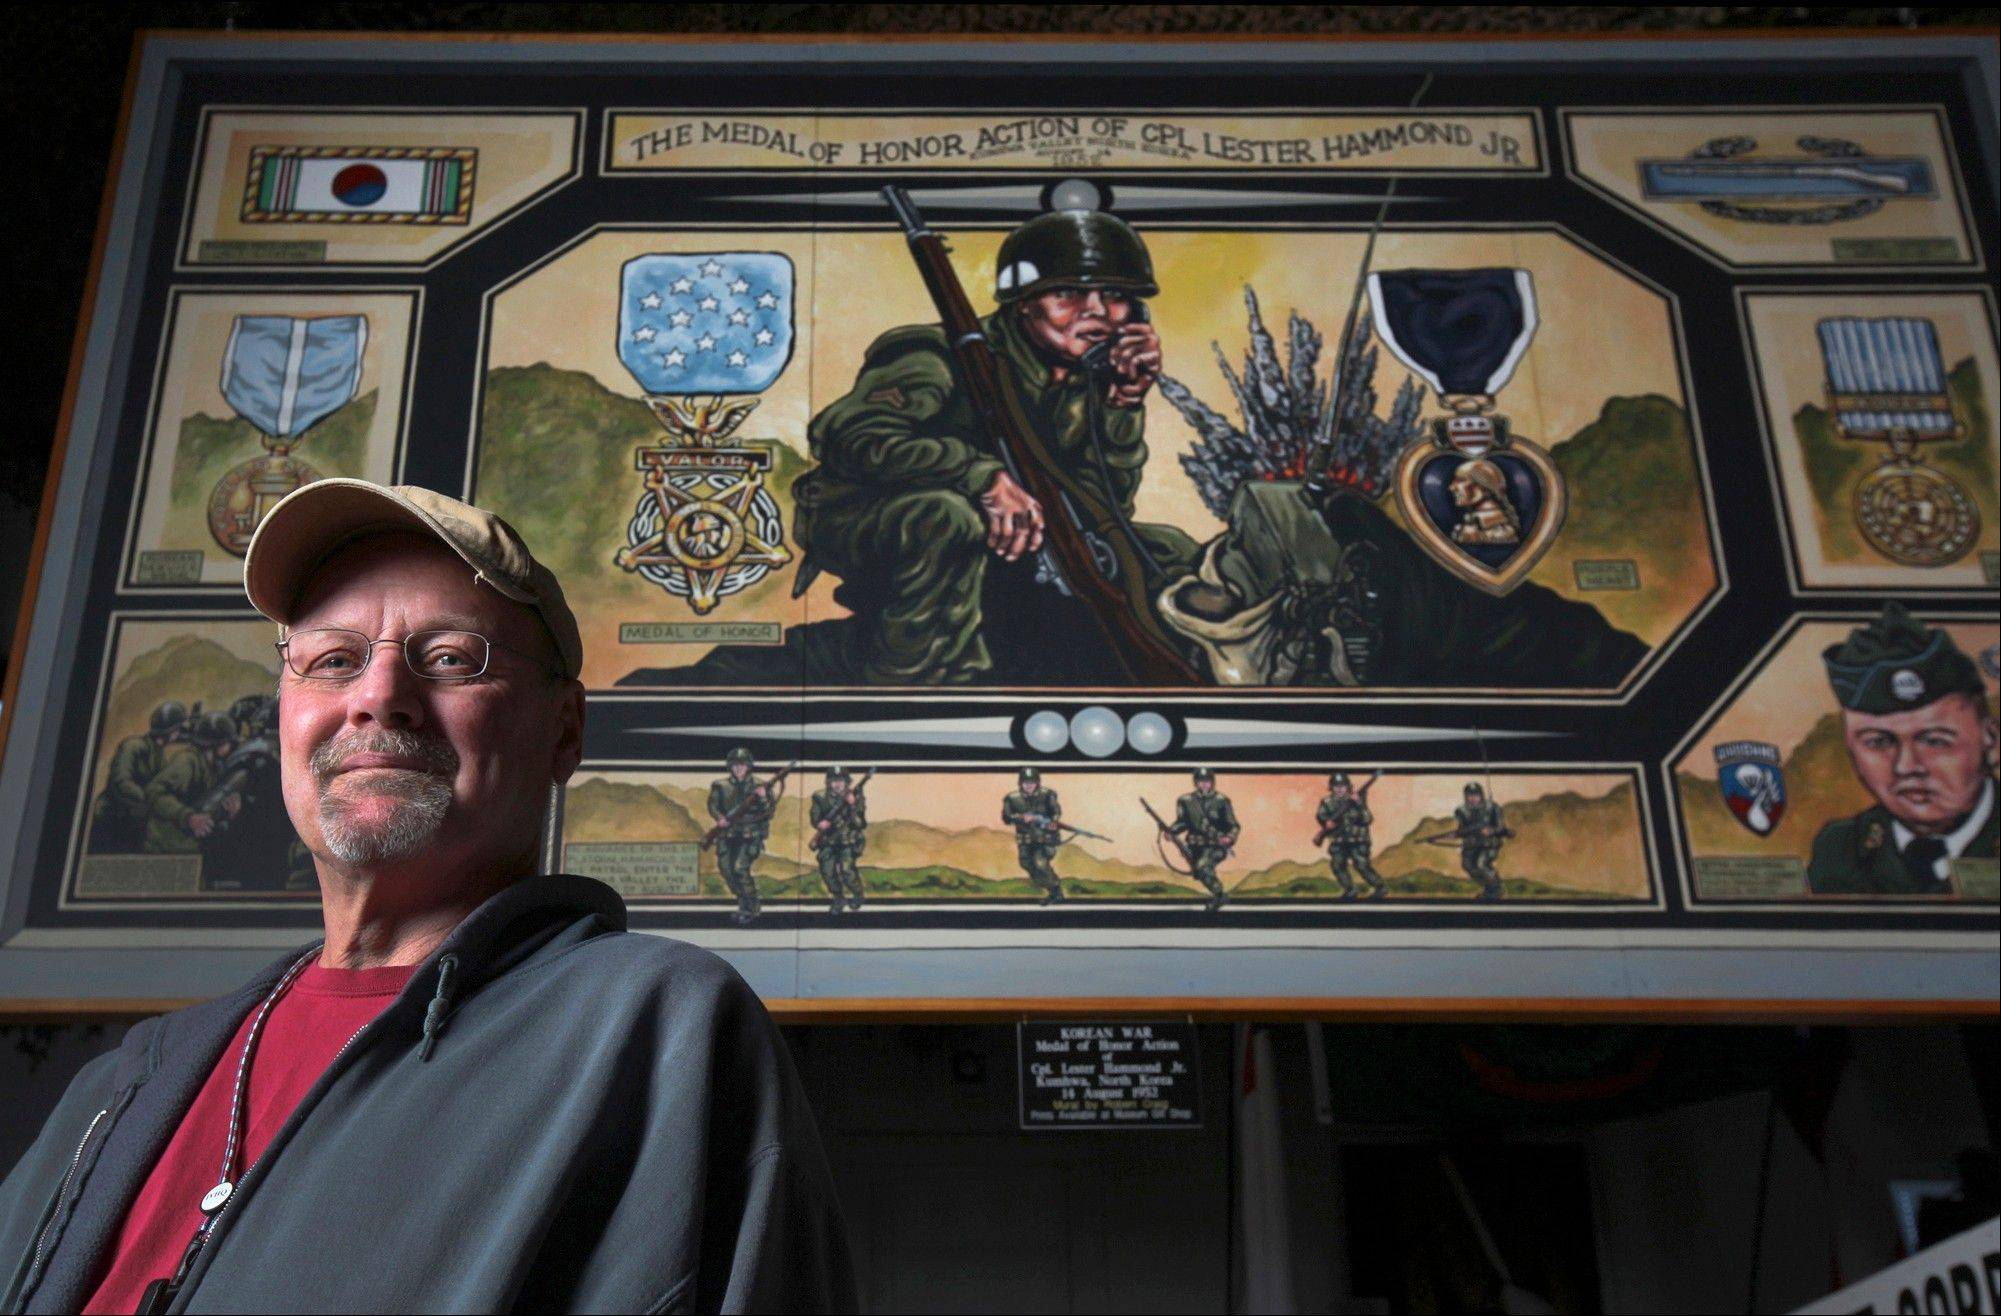 Bob Craig, curator of the All Wars Museum at the Illinois Veterans Home in Quincy stands in front of a mural he painted depicting the heroics of Medal of Honor recipient Lester Hammond Jr. of Quincy.